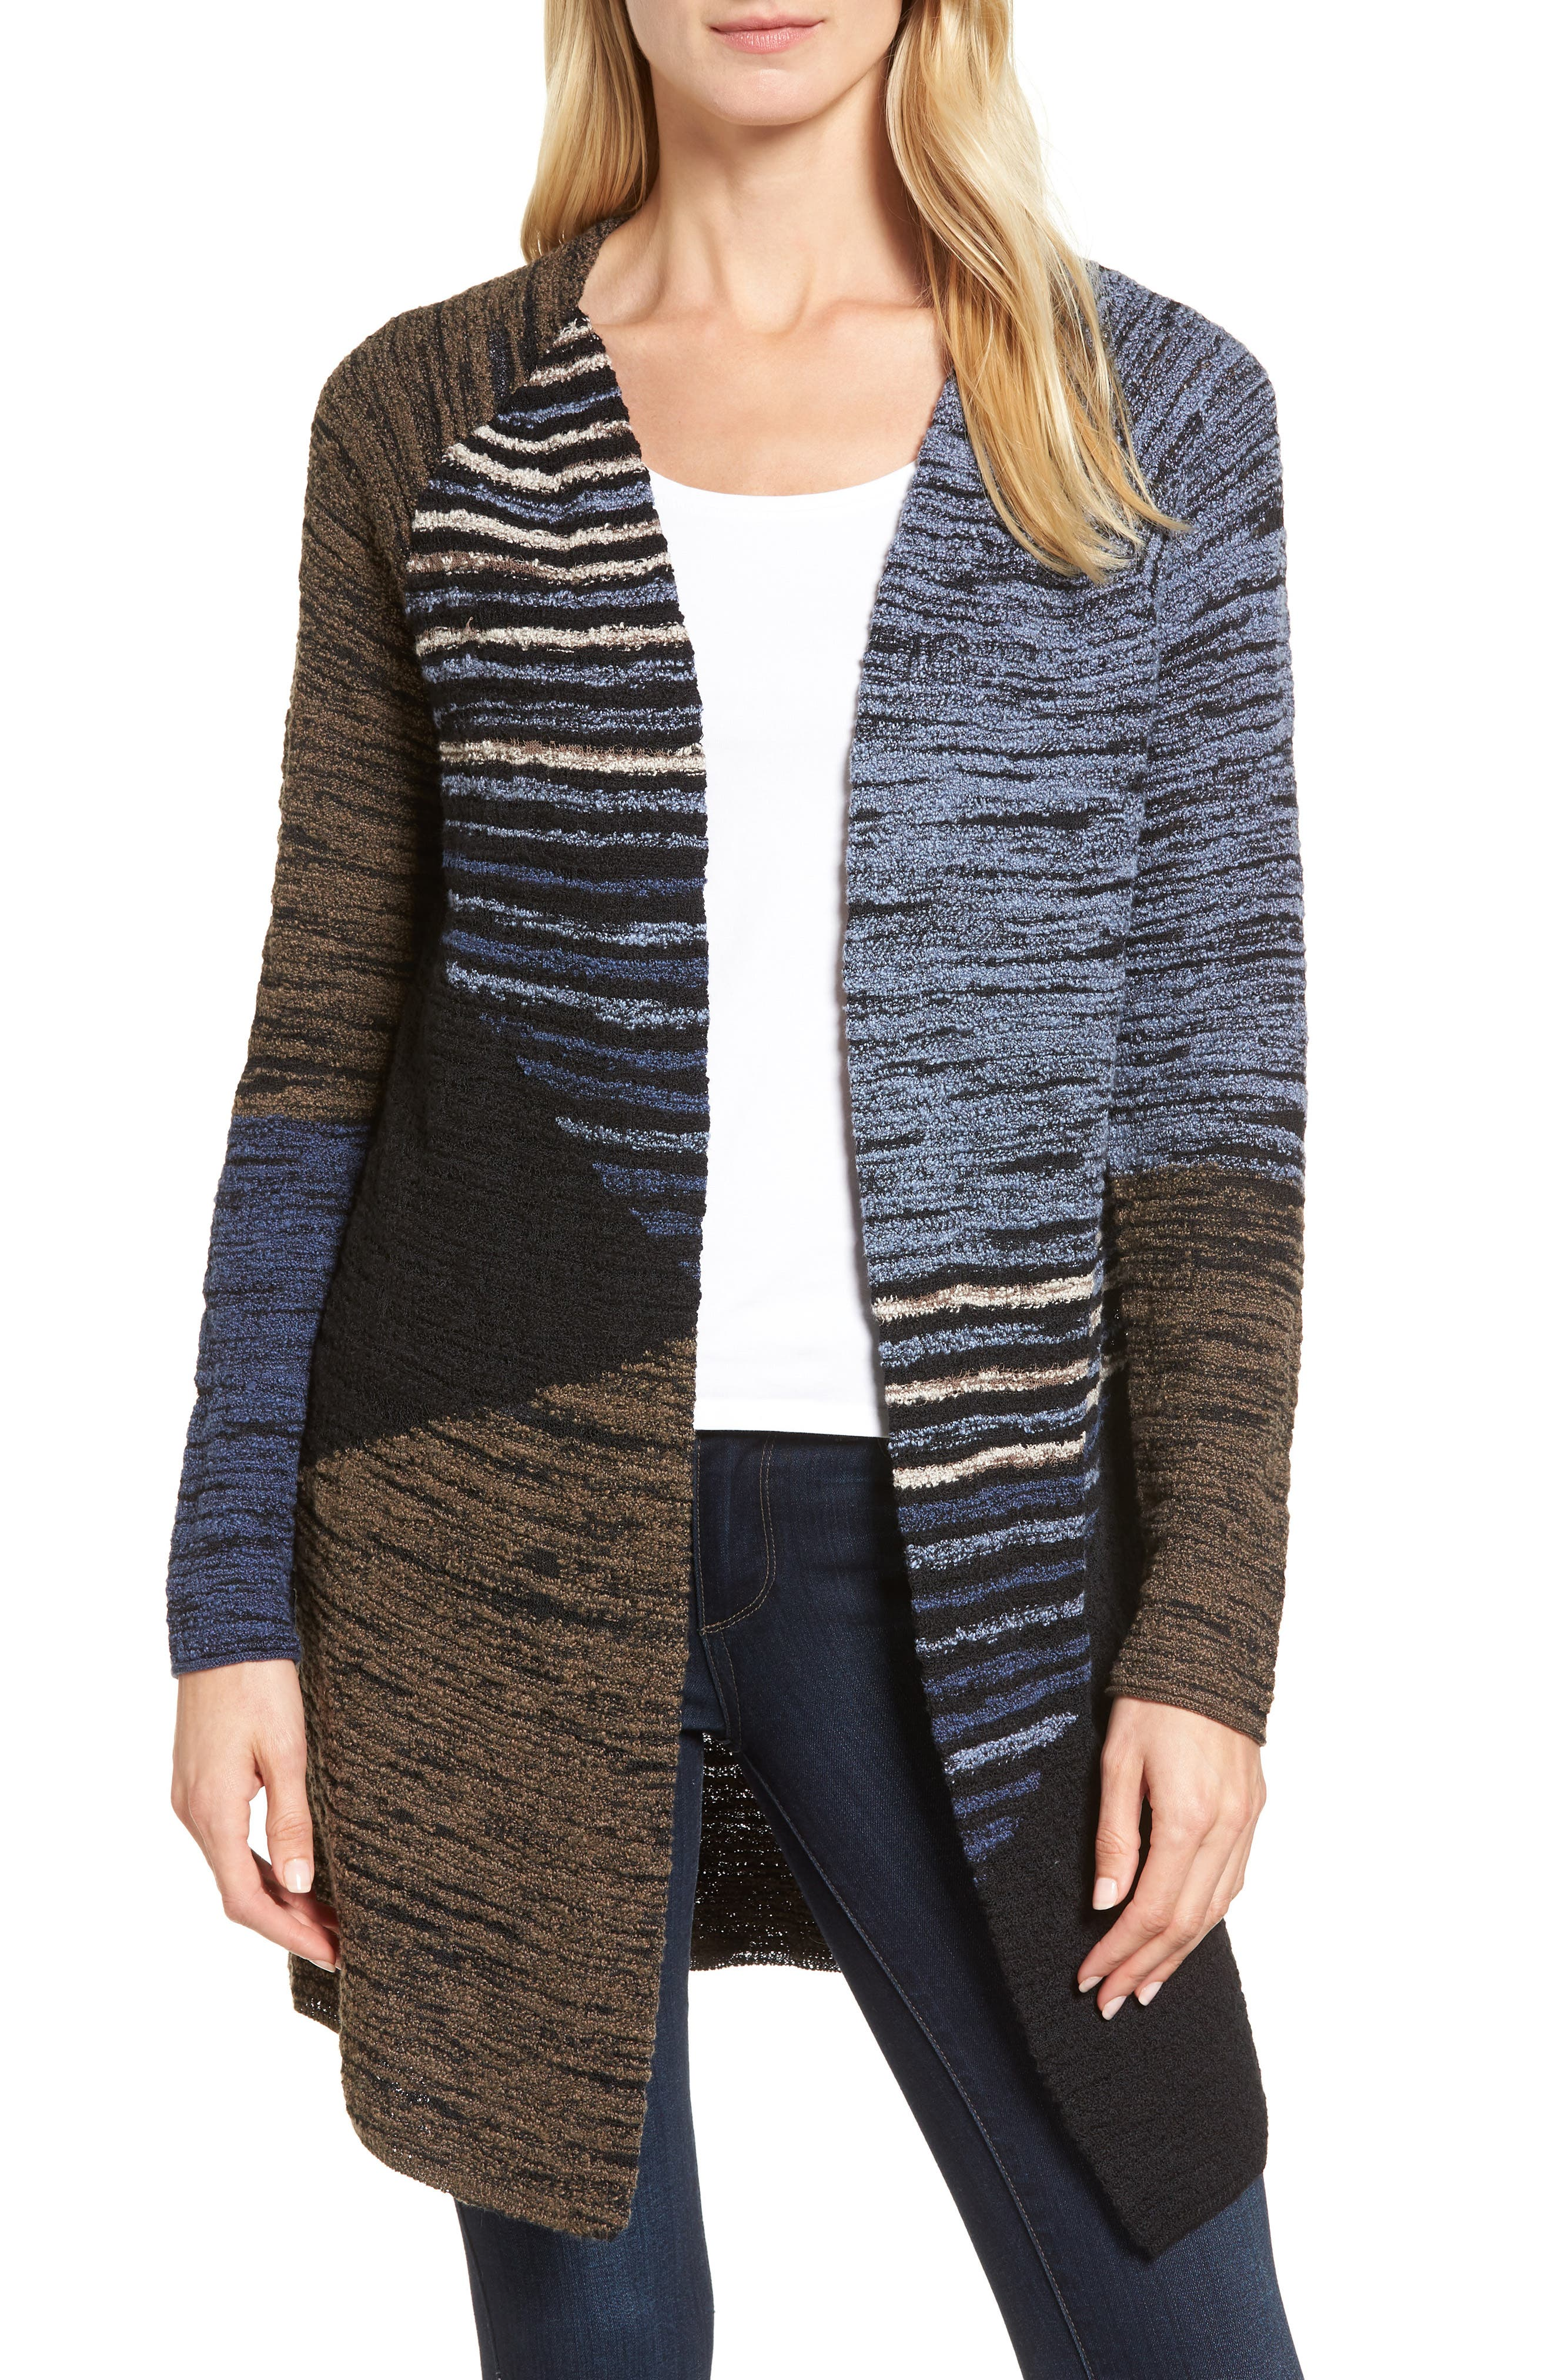 Layover Cardigan,                         Main,                         color, 499